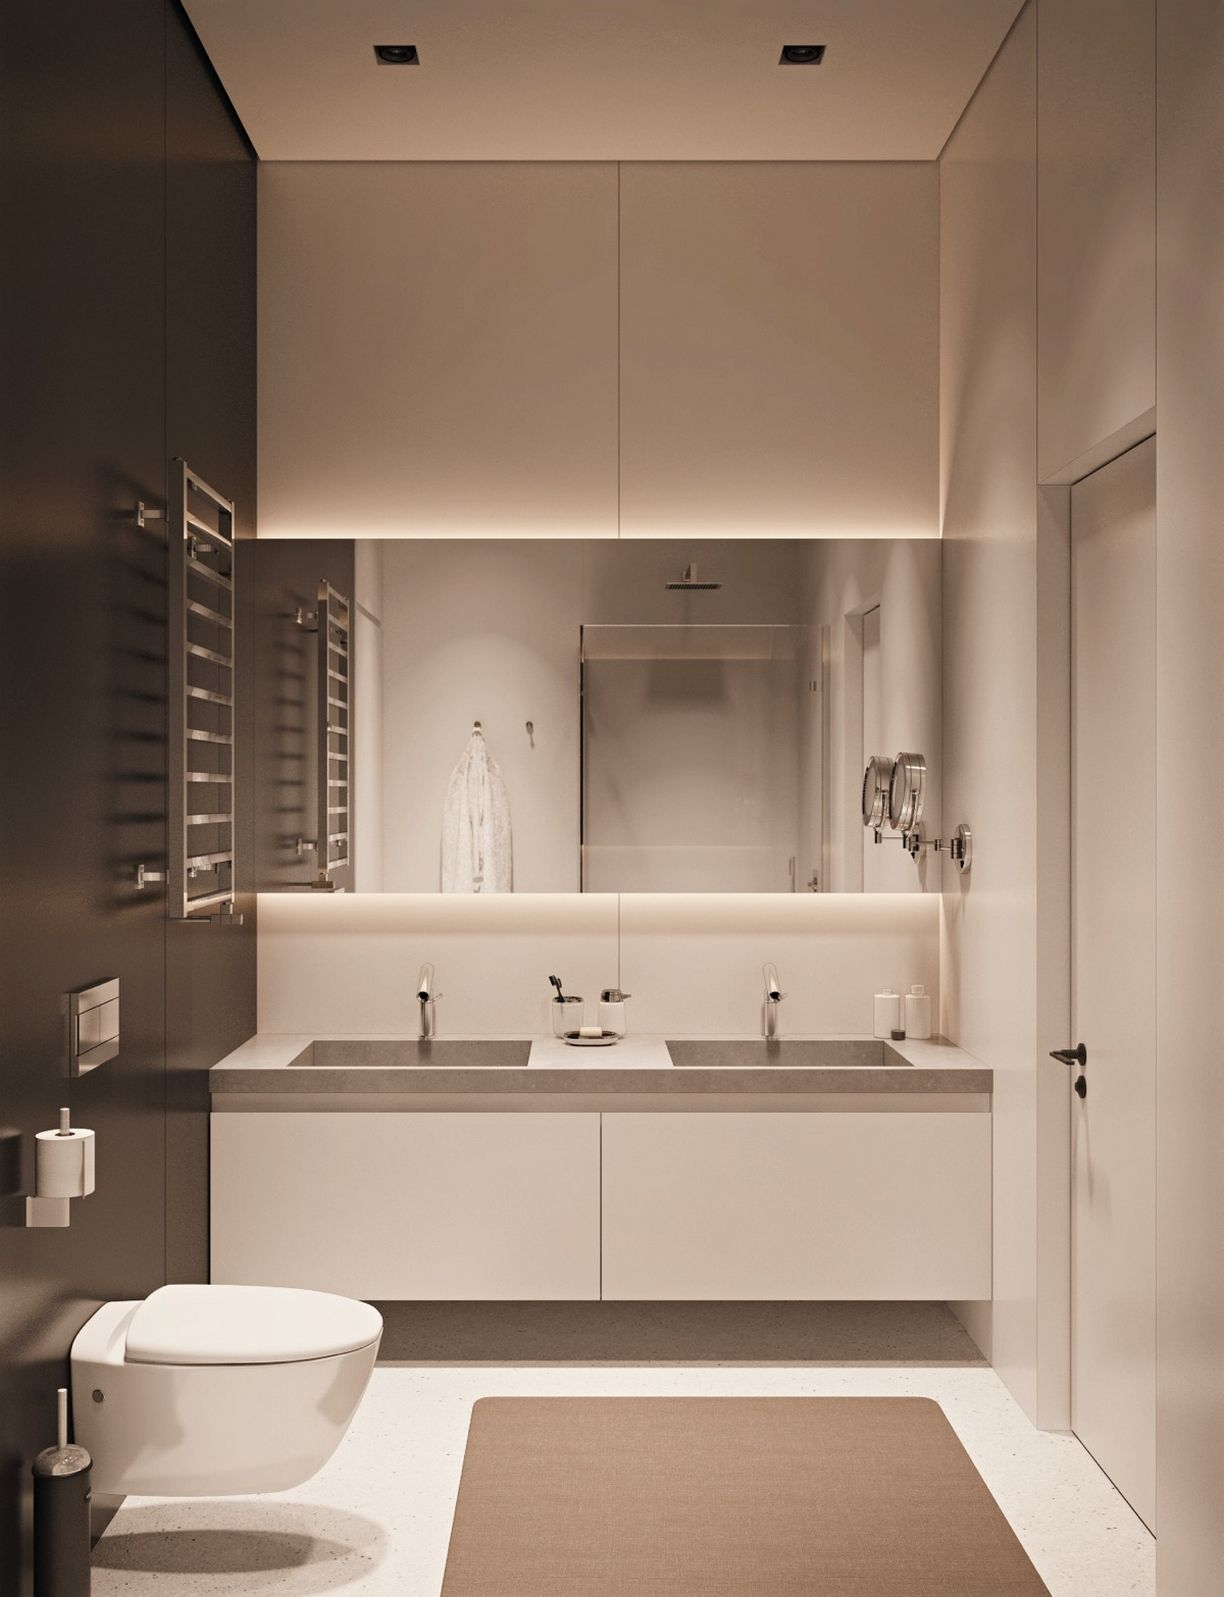 Pin On Bathroom Design Ideas And Inspiration